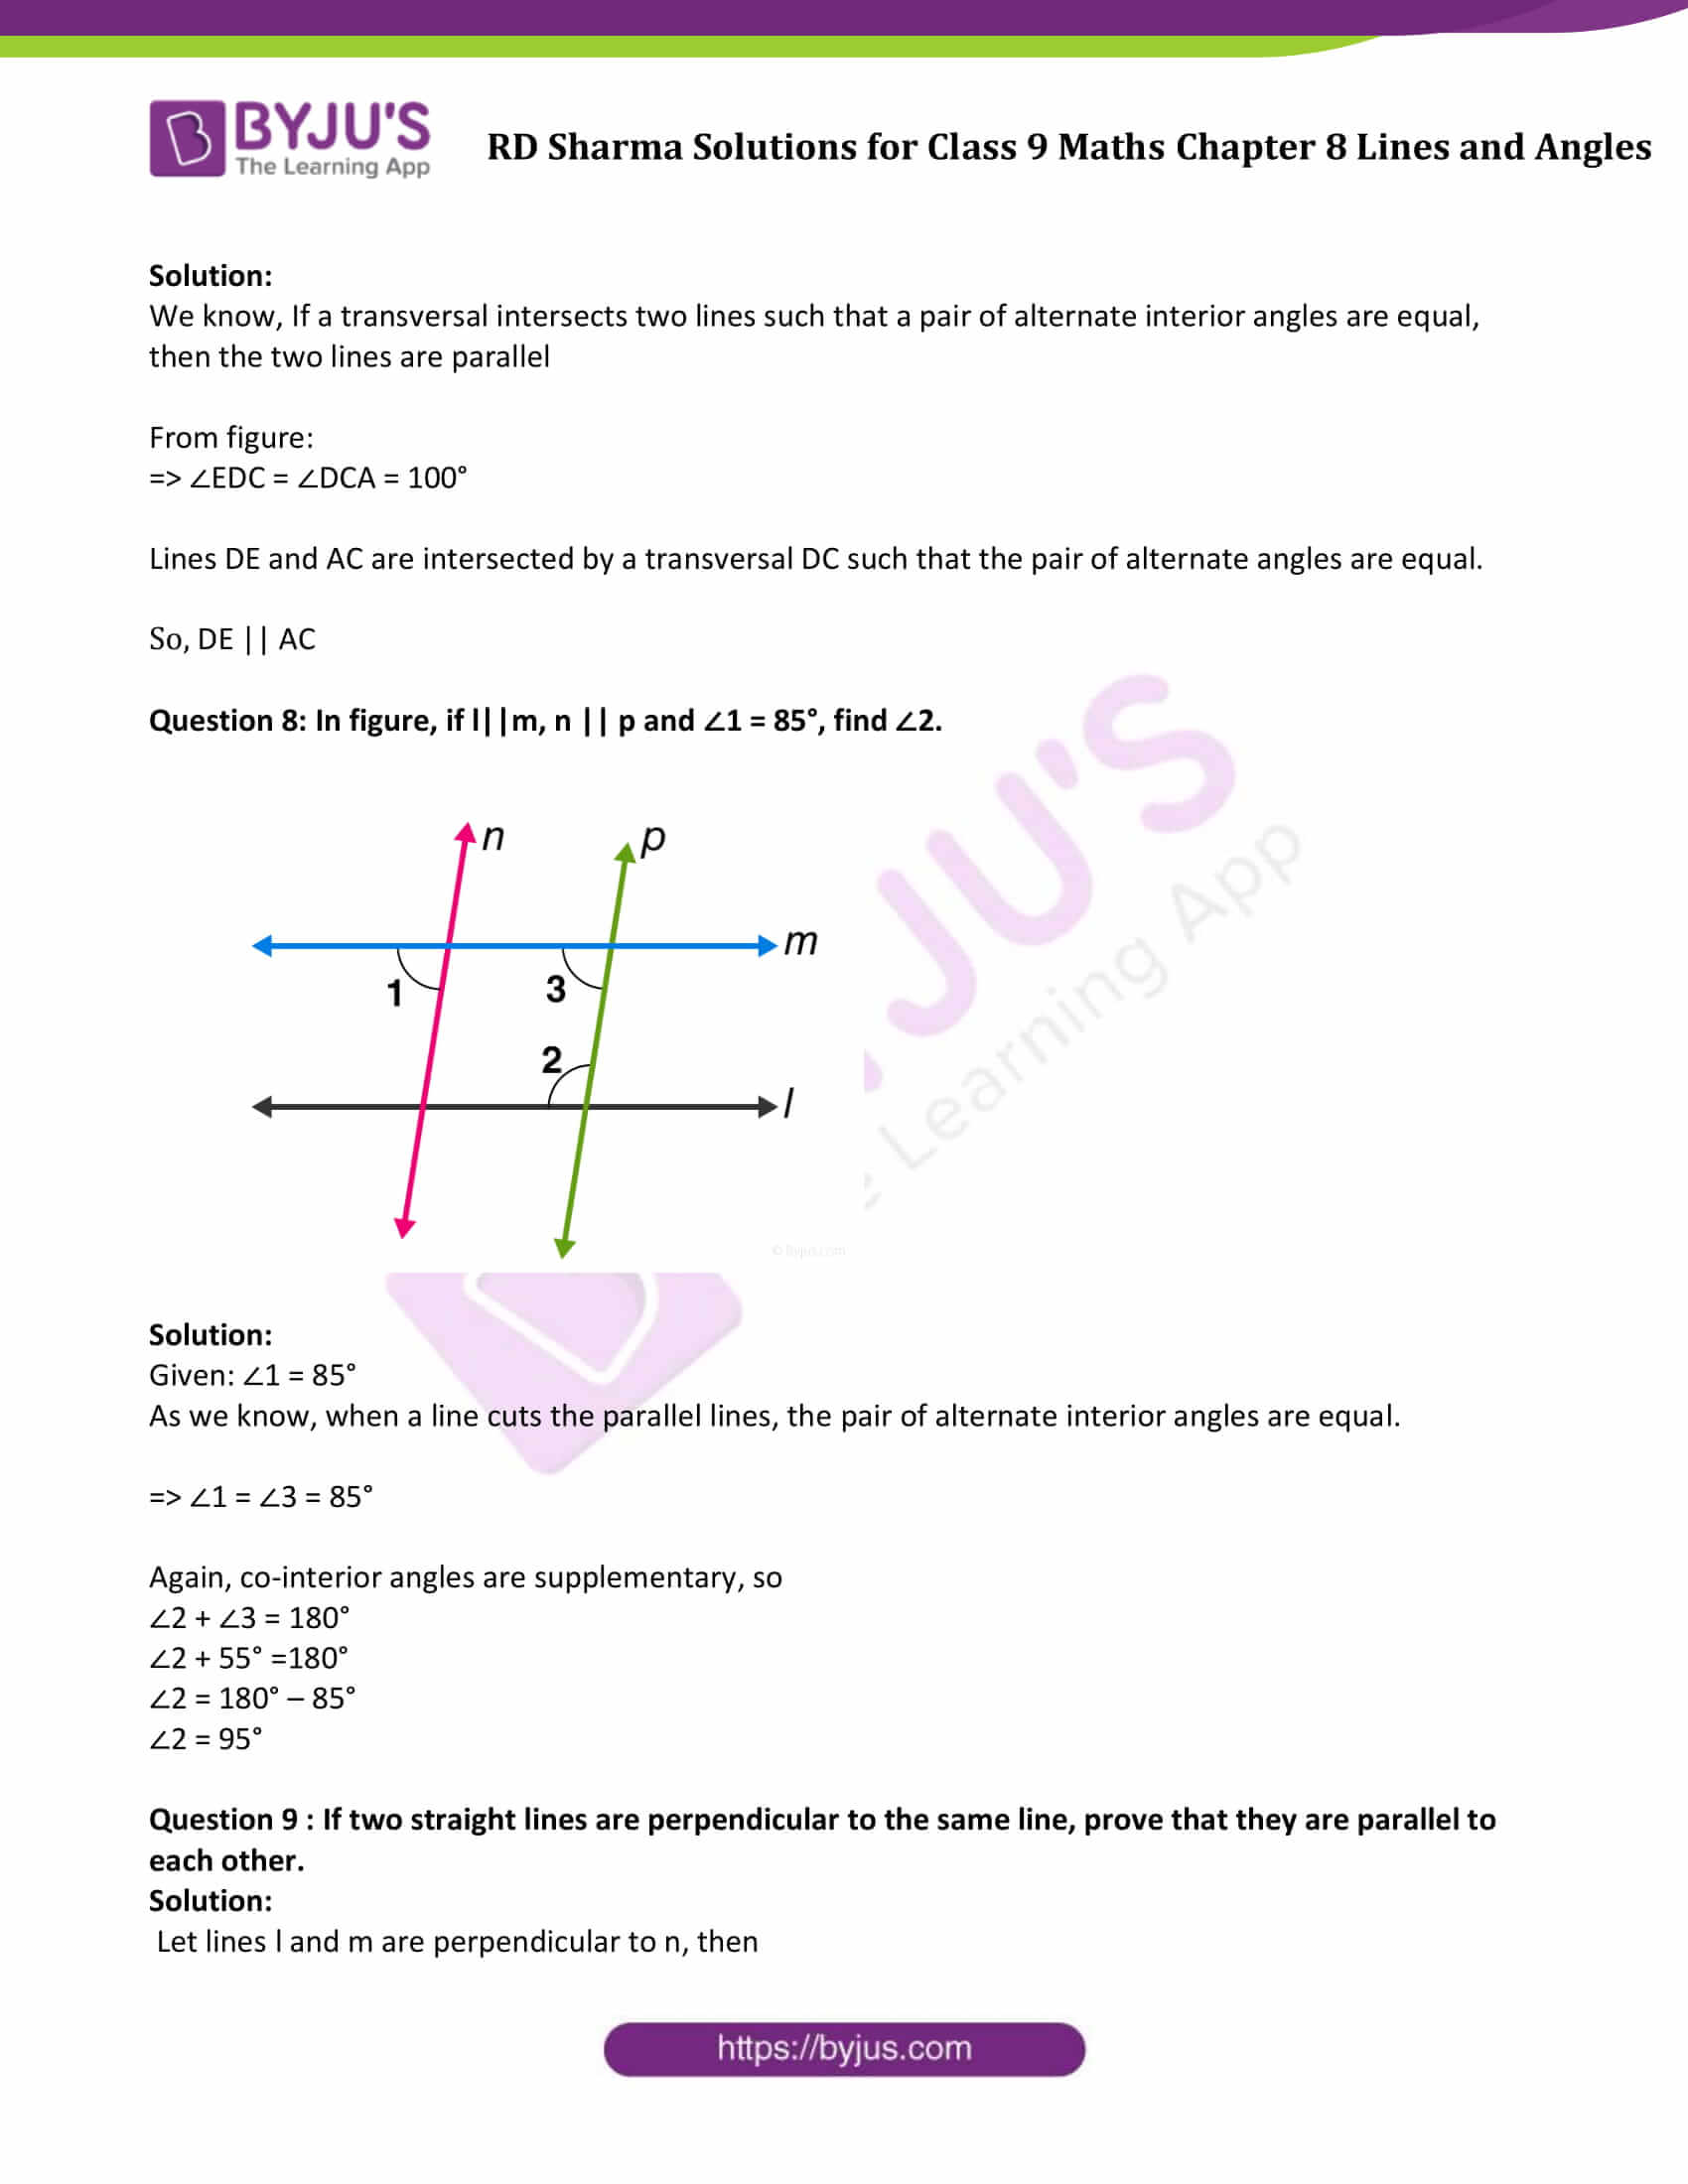 RD Sharma Solution class 9 Maths Chapter 8 Lines and Angles 22